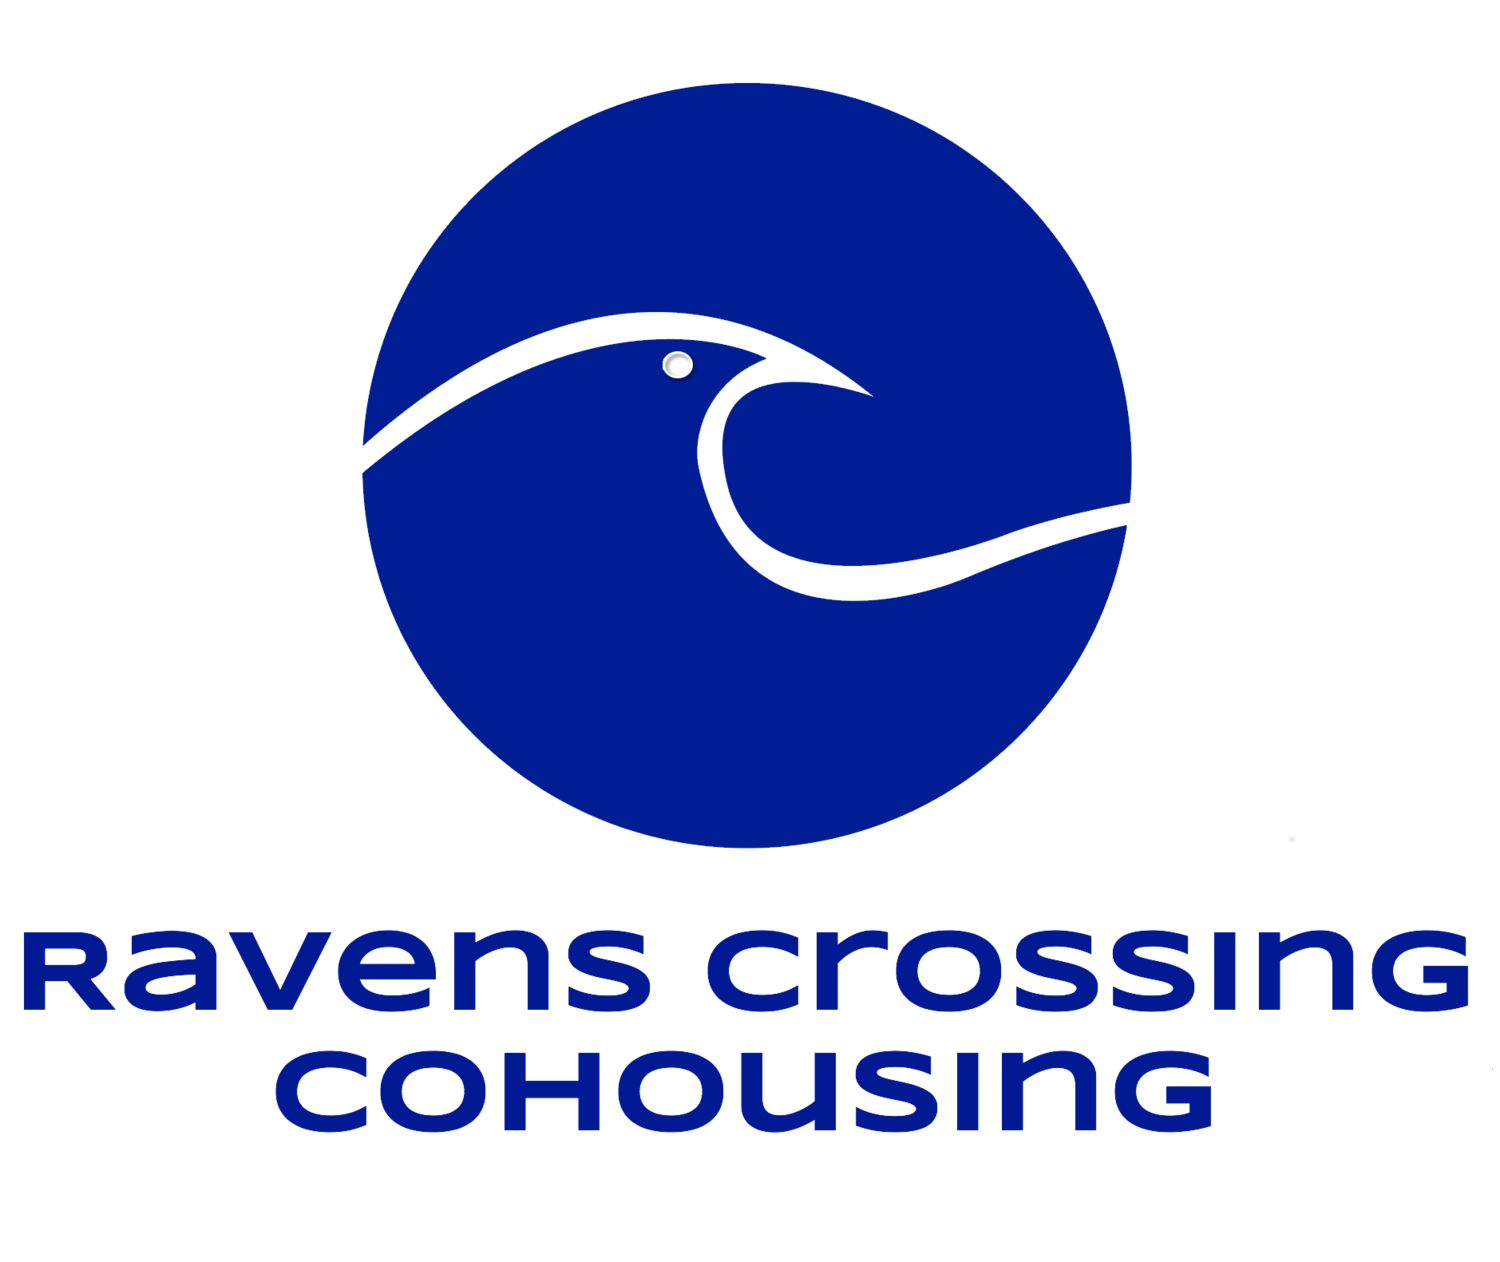 Ravens Crossing Cohousing